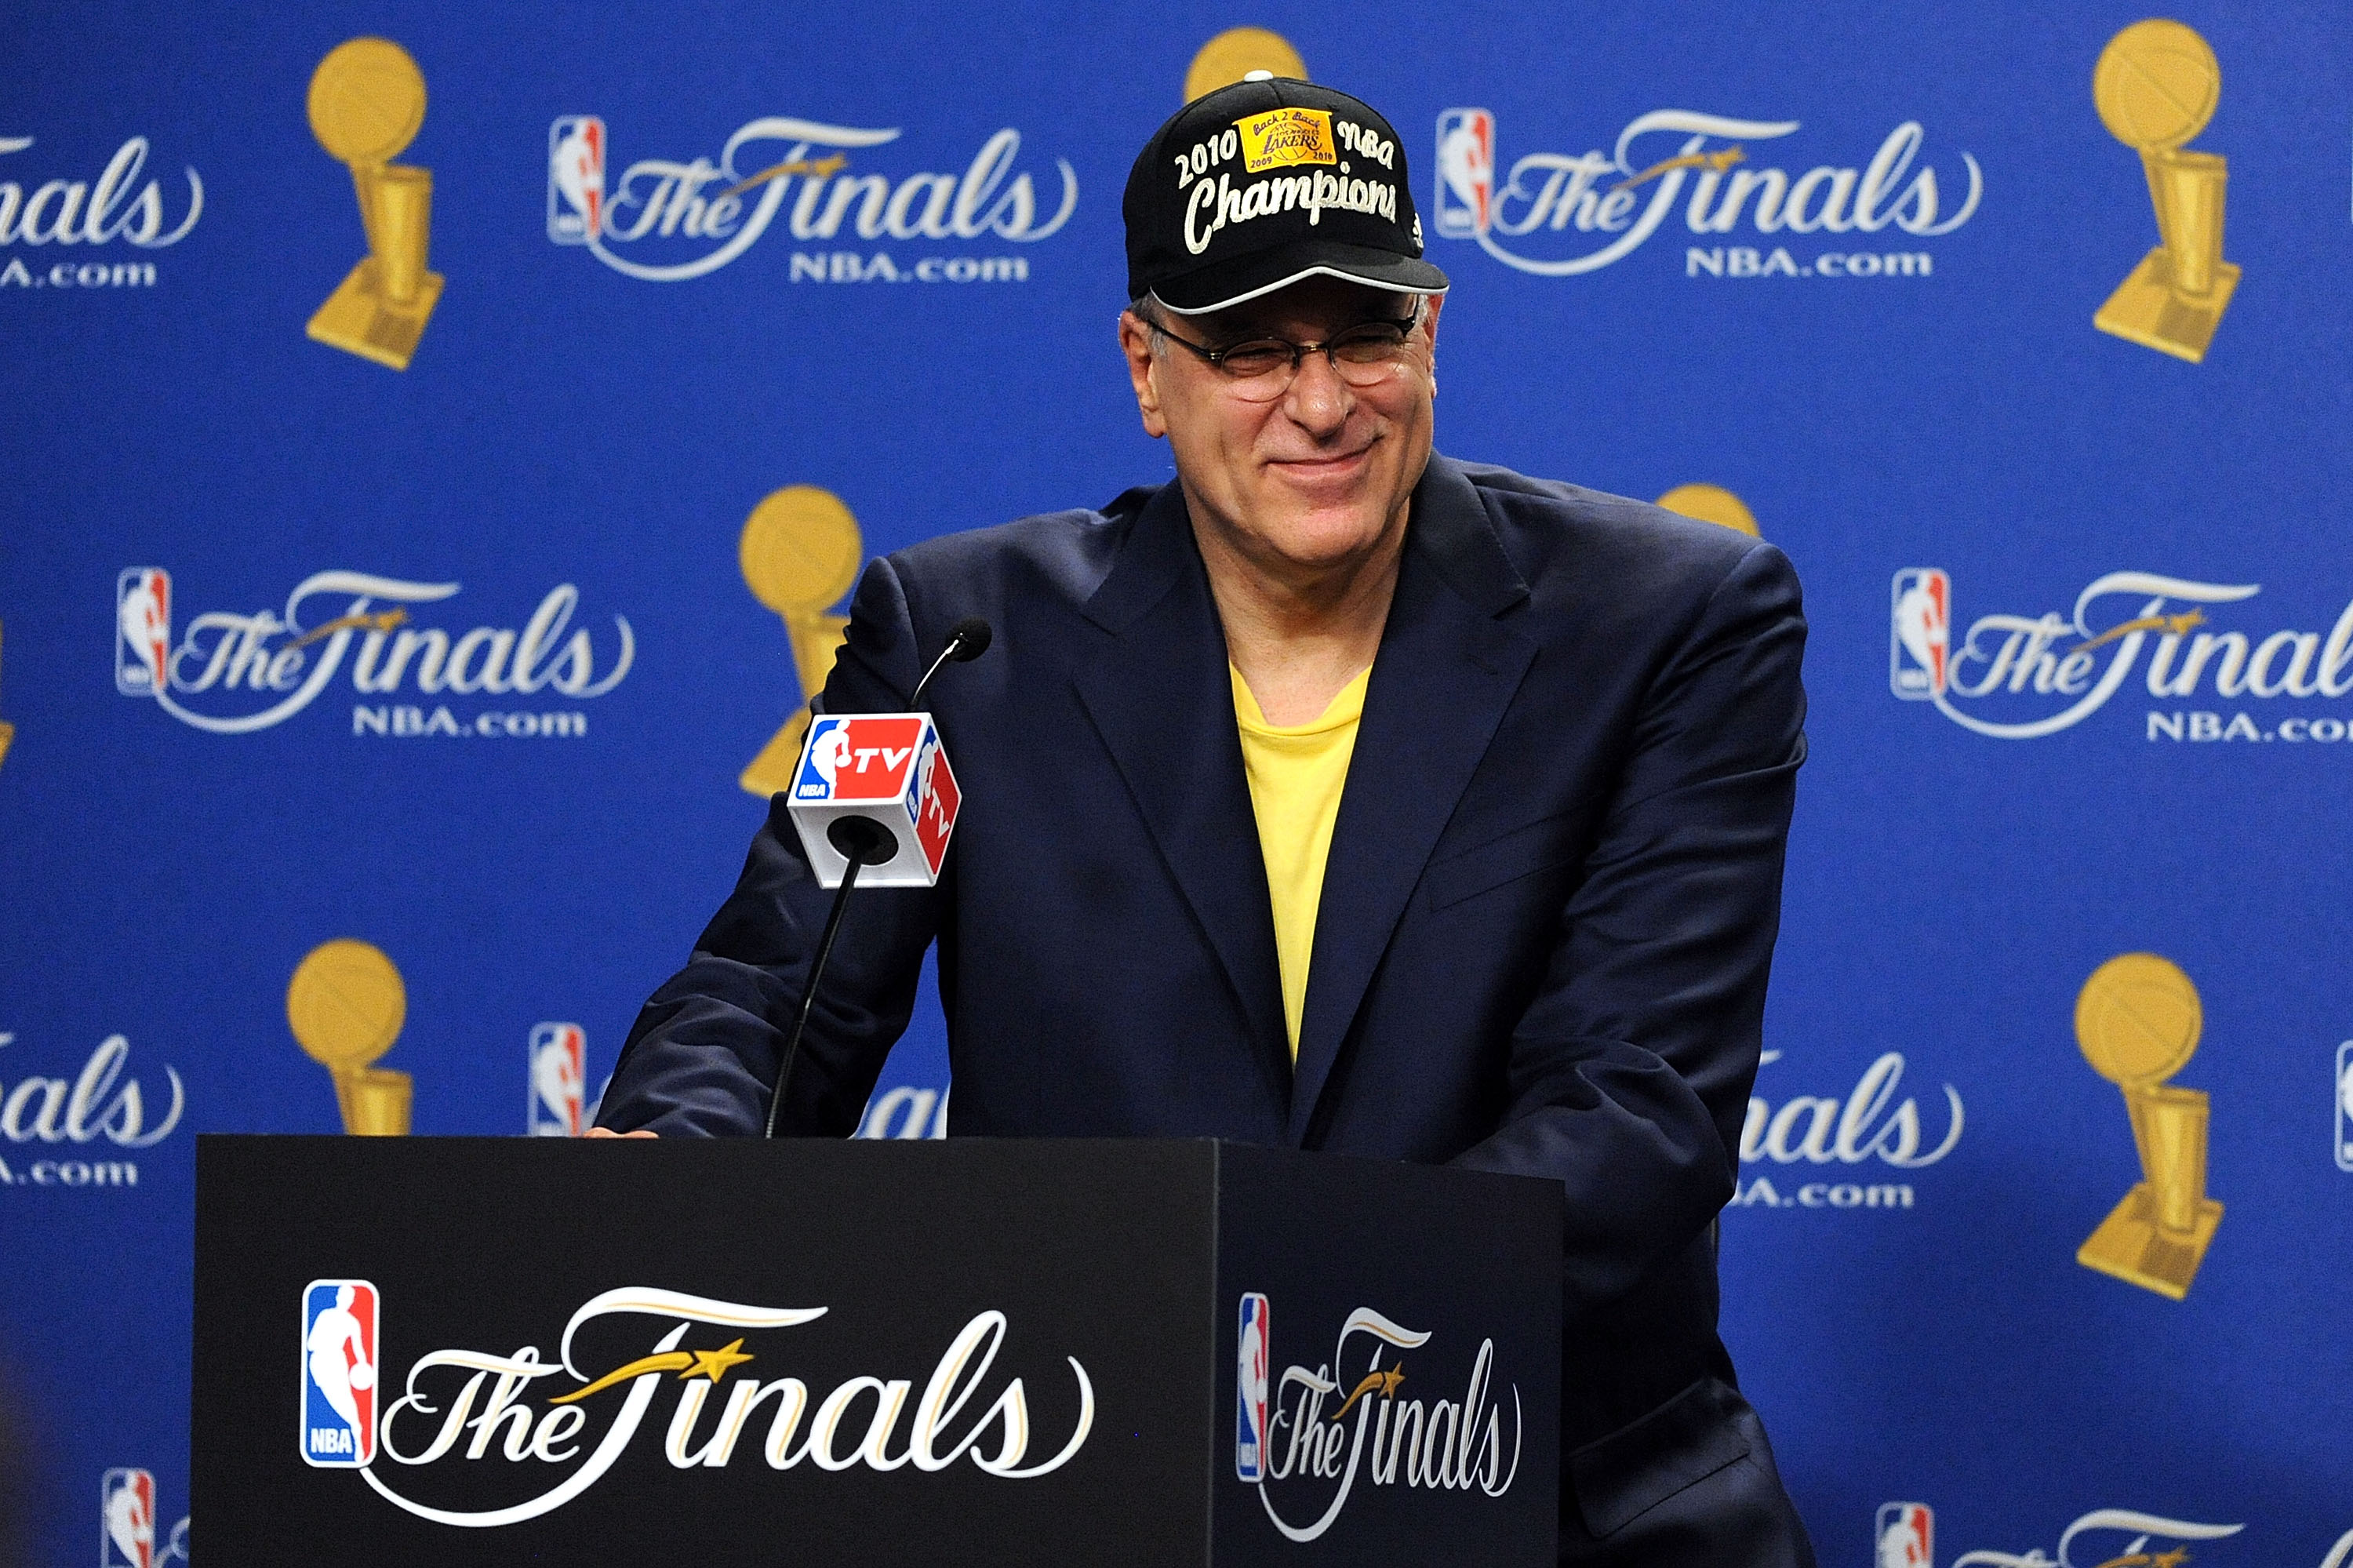 LOS ANGELES, CA - JUNE 17:  Head coach Phil Jackson of the Los Angeles Lakers speaks during the post game news conference as he celebrates after the Lakers defeated the Boston Celtics 83-79 in Game Seven of the 2010 NBA Finals at Staples Center on June 17